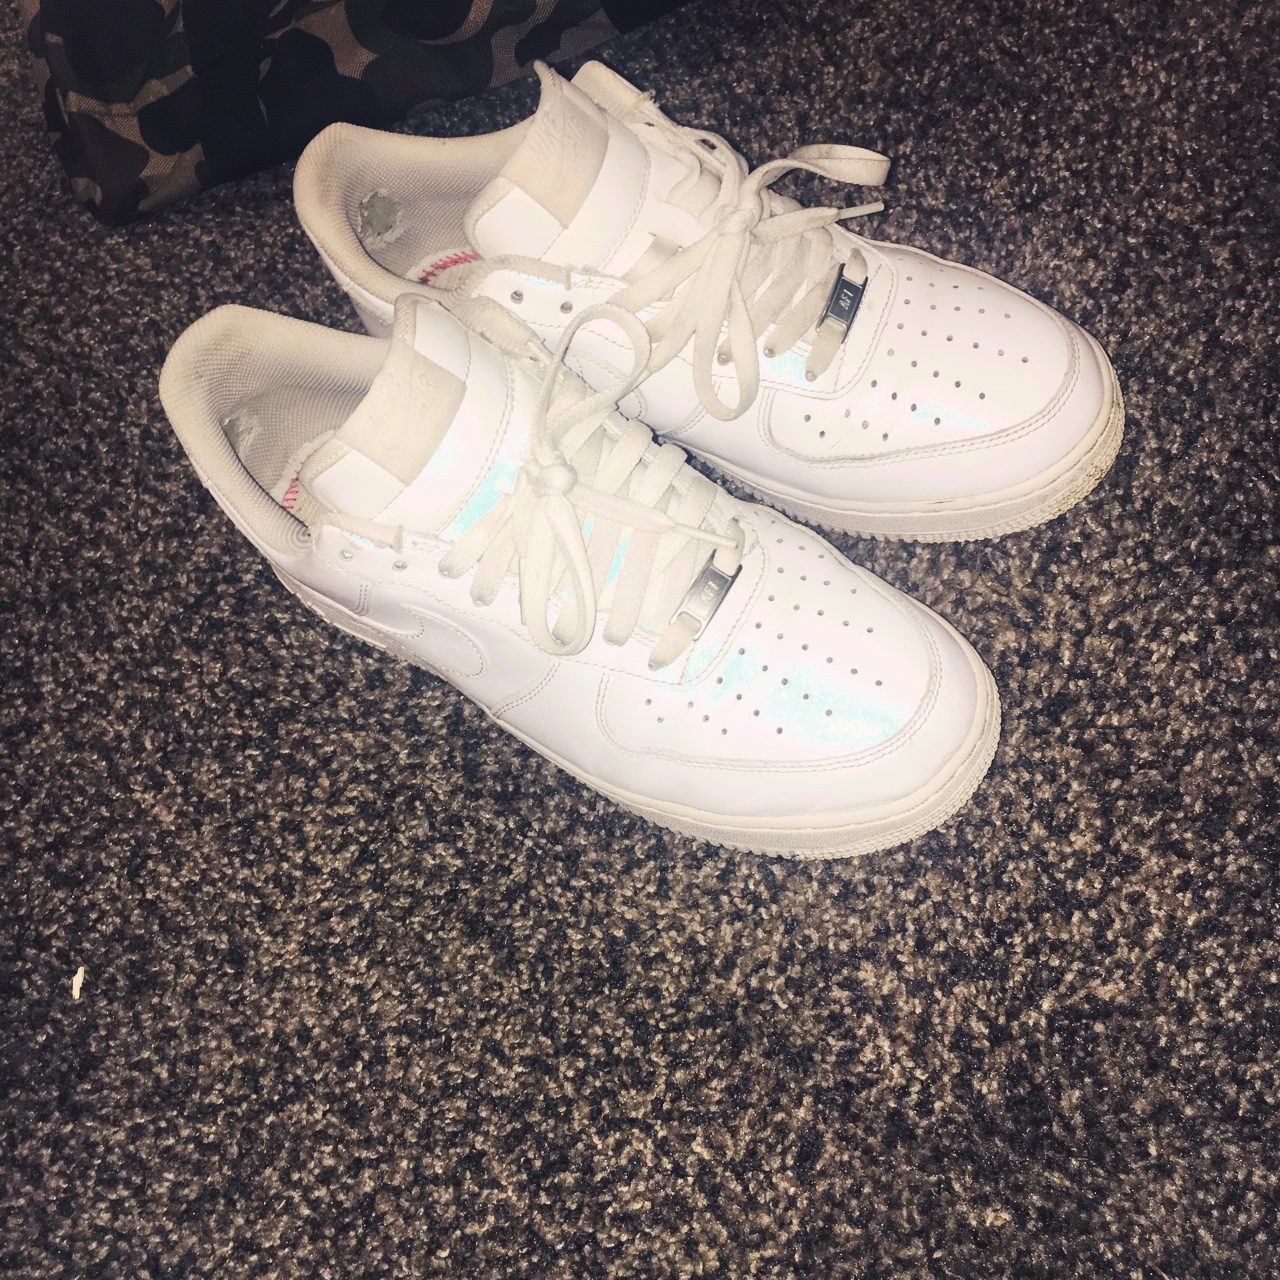 Nike Air Force 1 size 9 used white Depop